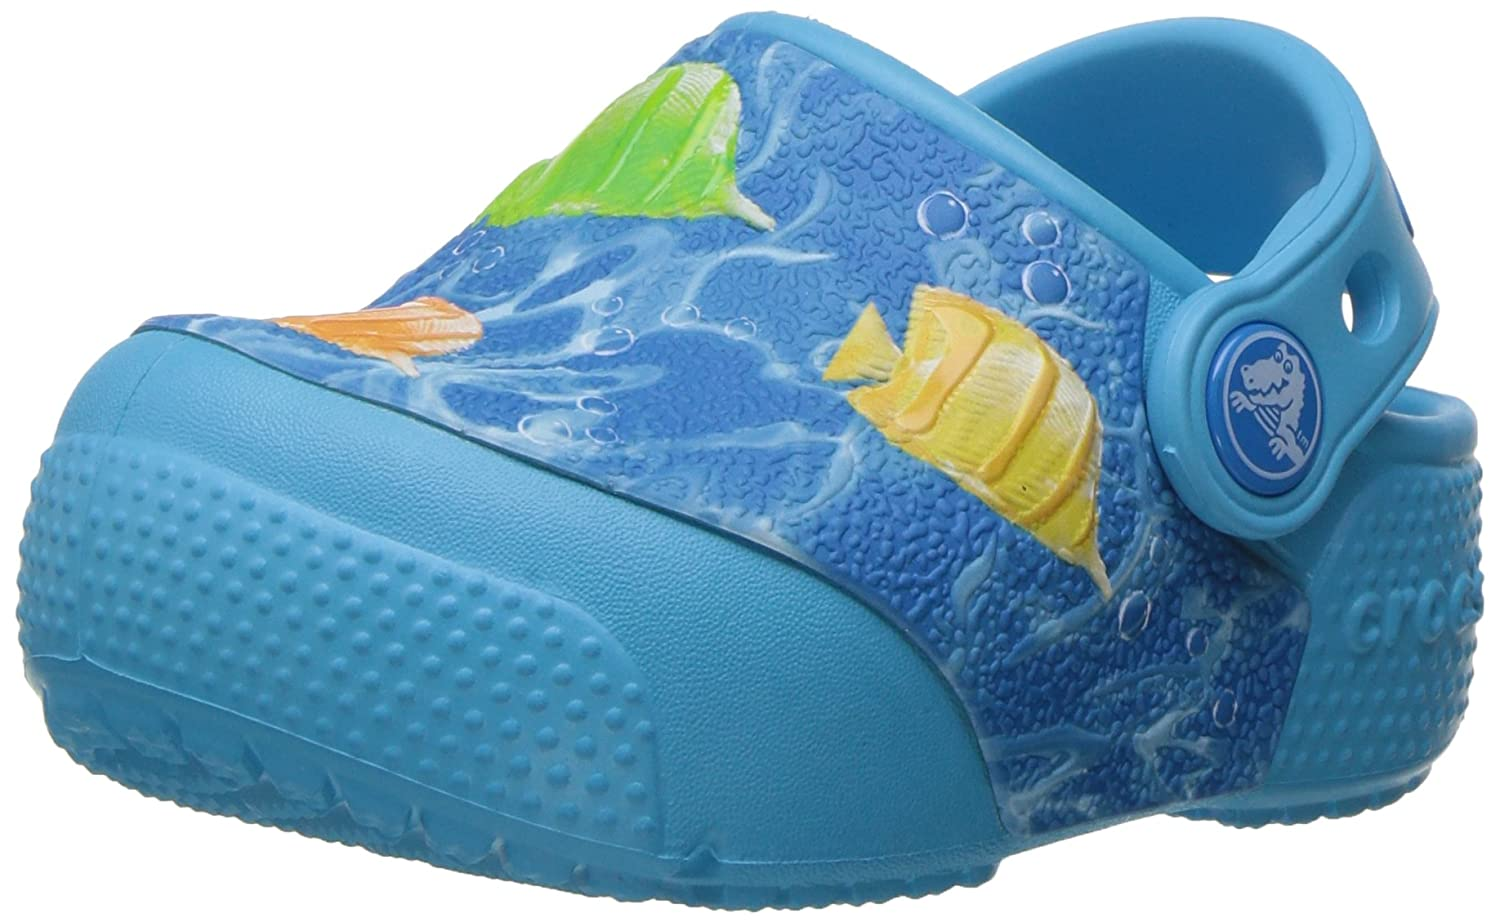 Crocs Kids' Crocsfunlab Lights Fish Clog CrocsFunLab Lights Fish - K